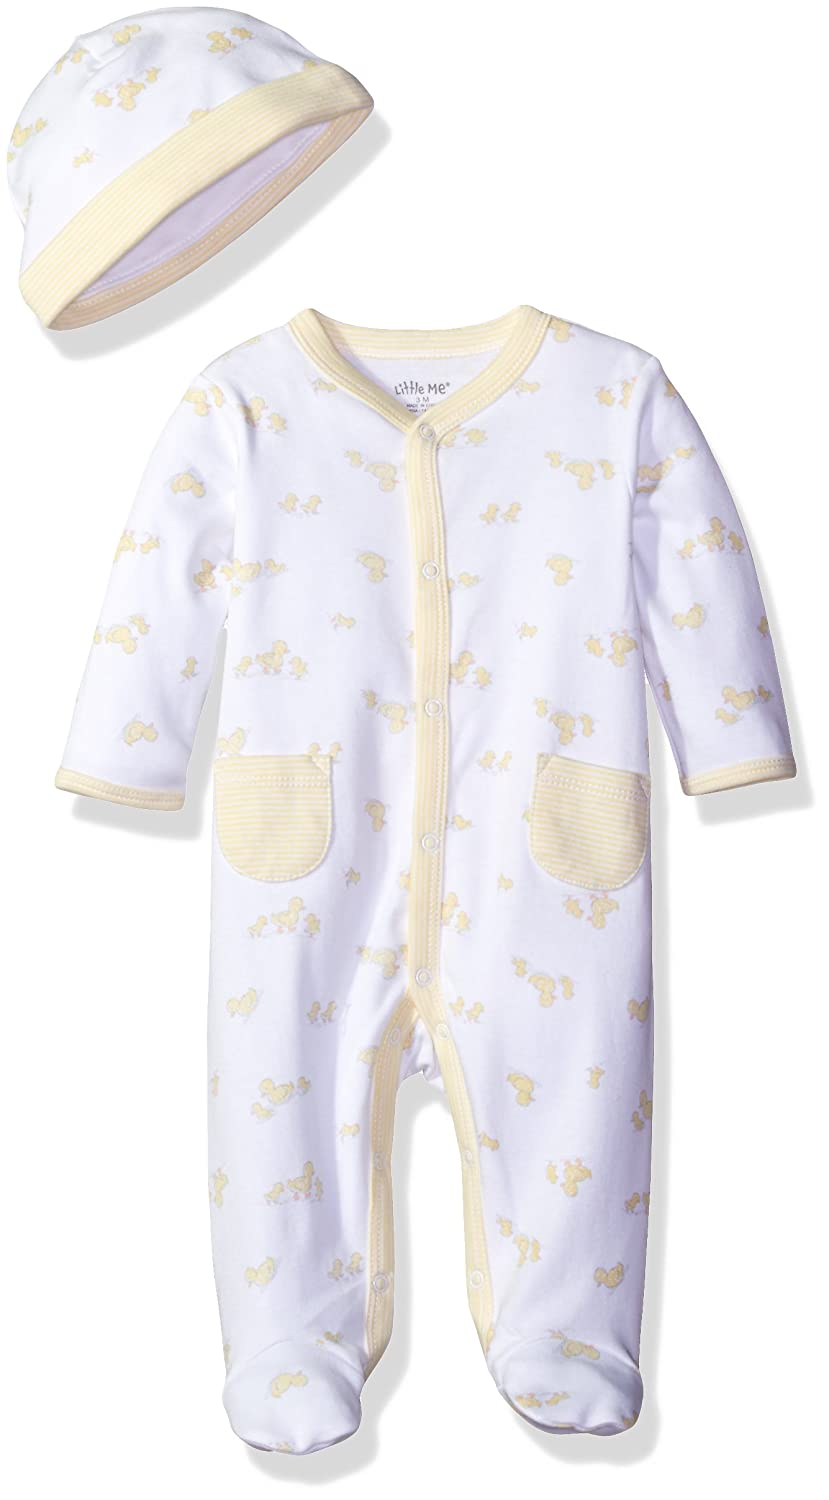 Little Me Unisex-Baby Unisex Baby 2 Piece Footie and Cap Set LBQ05706N